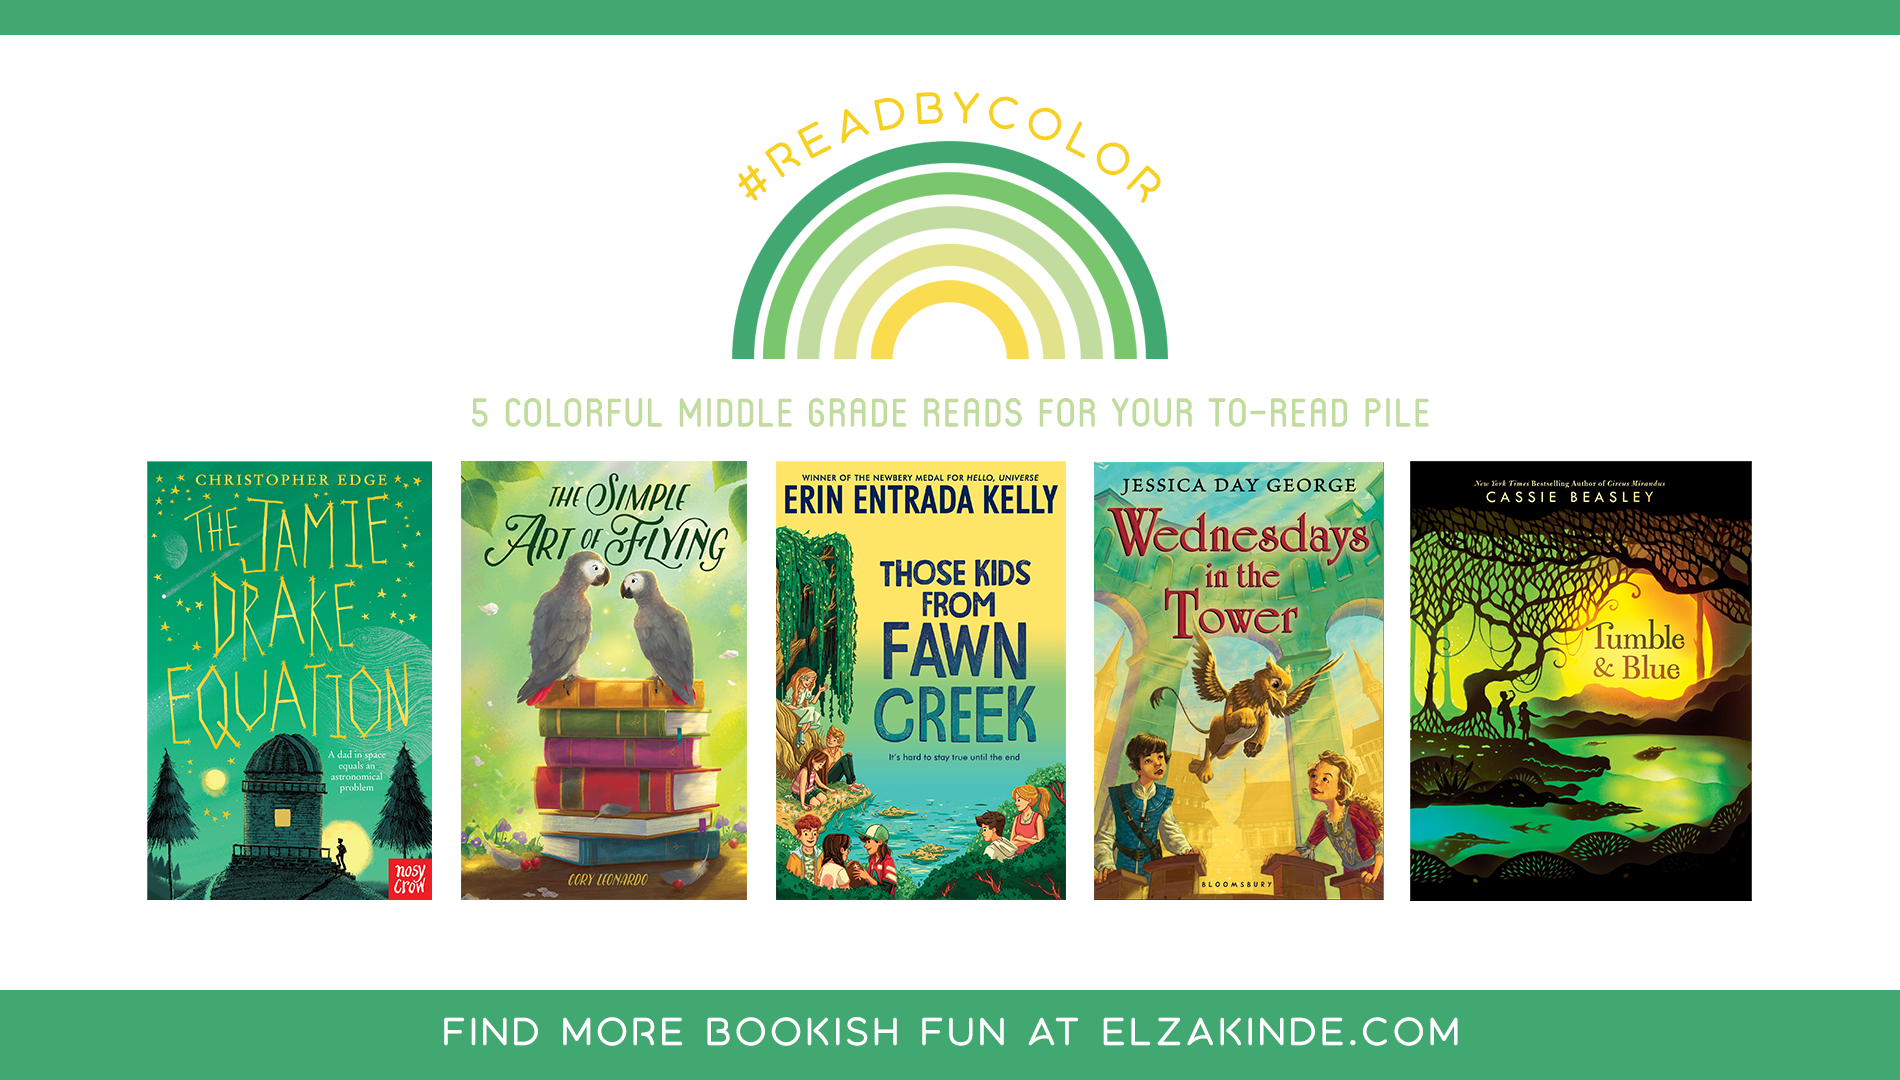 #ReadByColor: 5 Colorful Middle Grade Reads for Your To-Read Pile | features the book covers of THE JAMIE DRAKE EQUATION by Christopher Edge; THE SIMPLE ART OF FLYING by Cory Leonardo; THOSE KIDS FROM FAWN CREEK by Erin Entrada Kelly; WEDNESDAYS IN THE TOWER by Jessica Day George; and TUMBLE & BLUE by Cassie Beasley